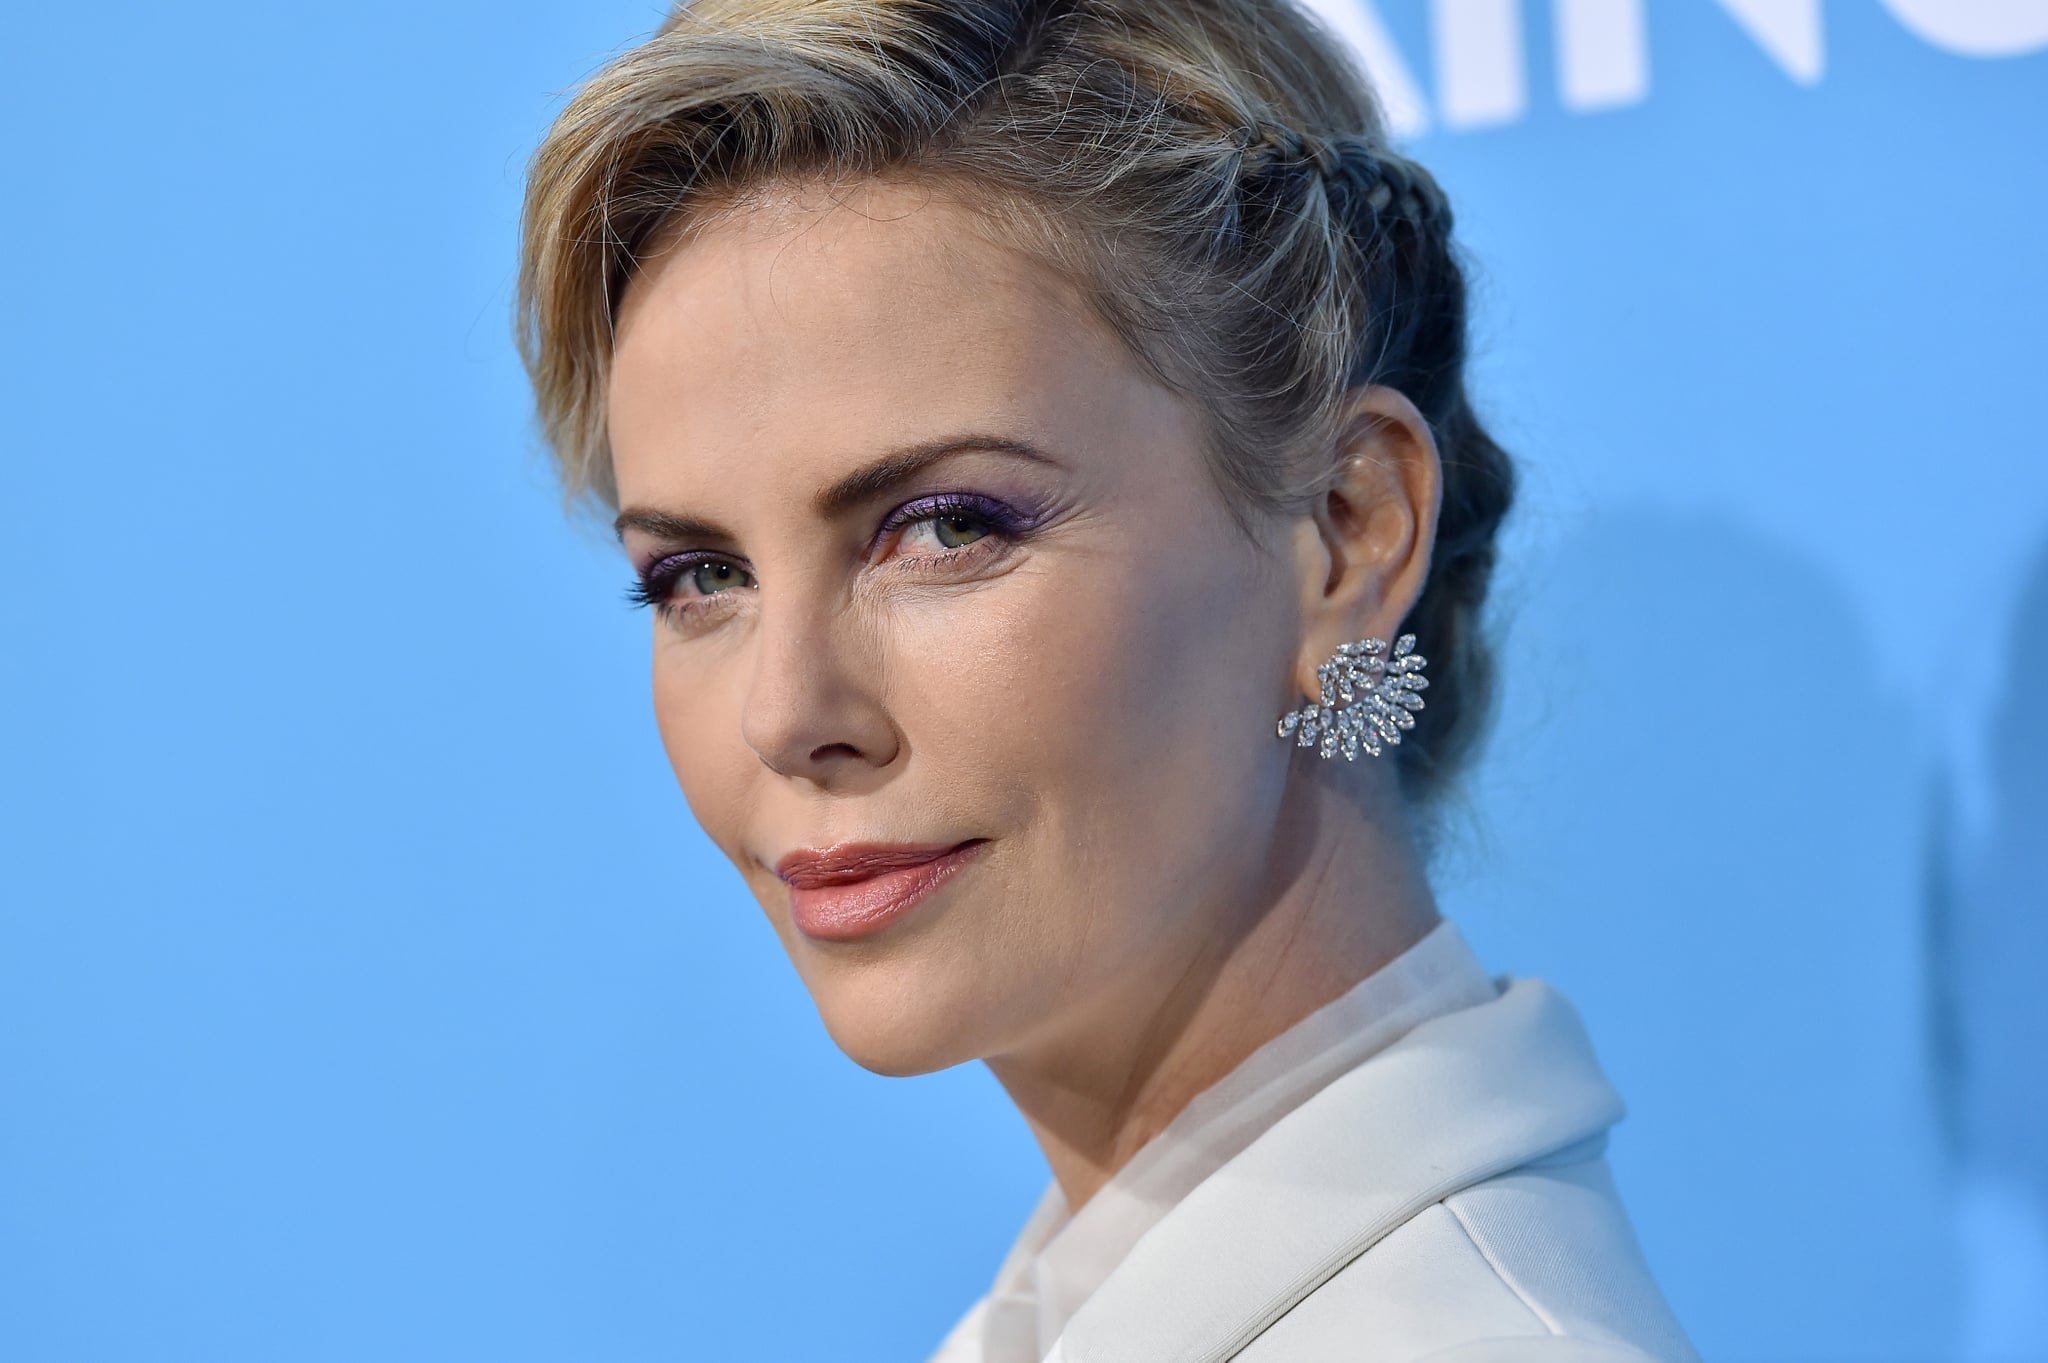 LOS ANGELES, CA - MARCH 06:  Actress/producer Charlize Theron attends the World Premiere of 'Gringo' at Regal LA Live Stadium 14 on March 6, 2018 in Los Angeles, California.  (Photo by Axelle/Bauer-Griffin/FilmMagic)